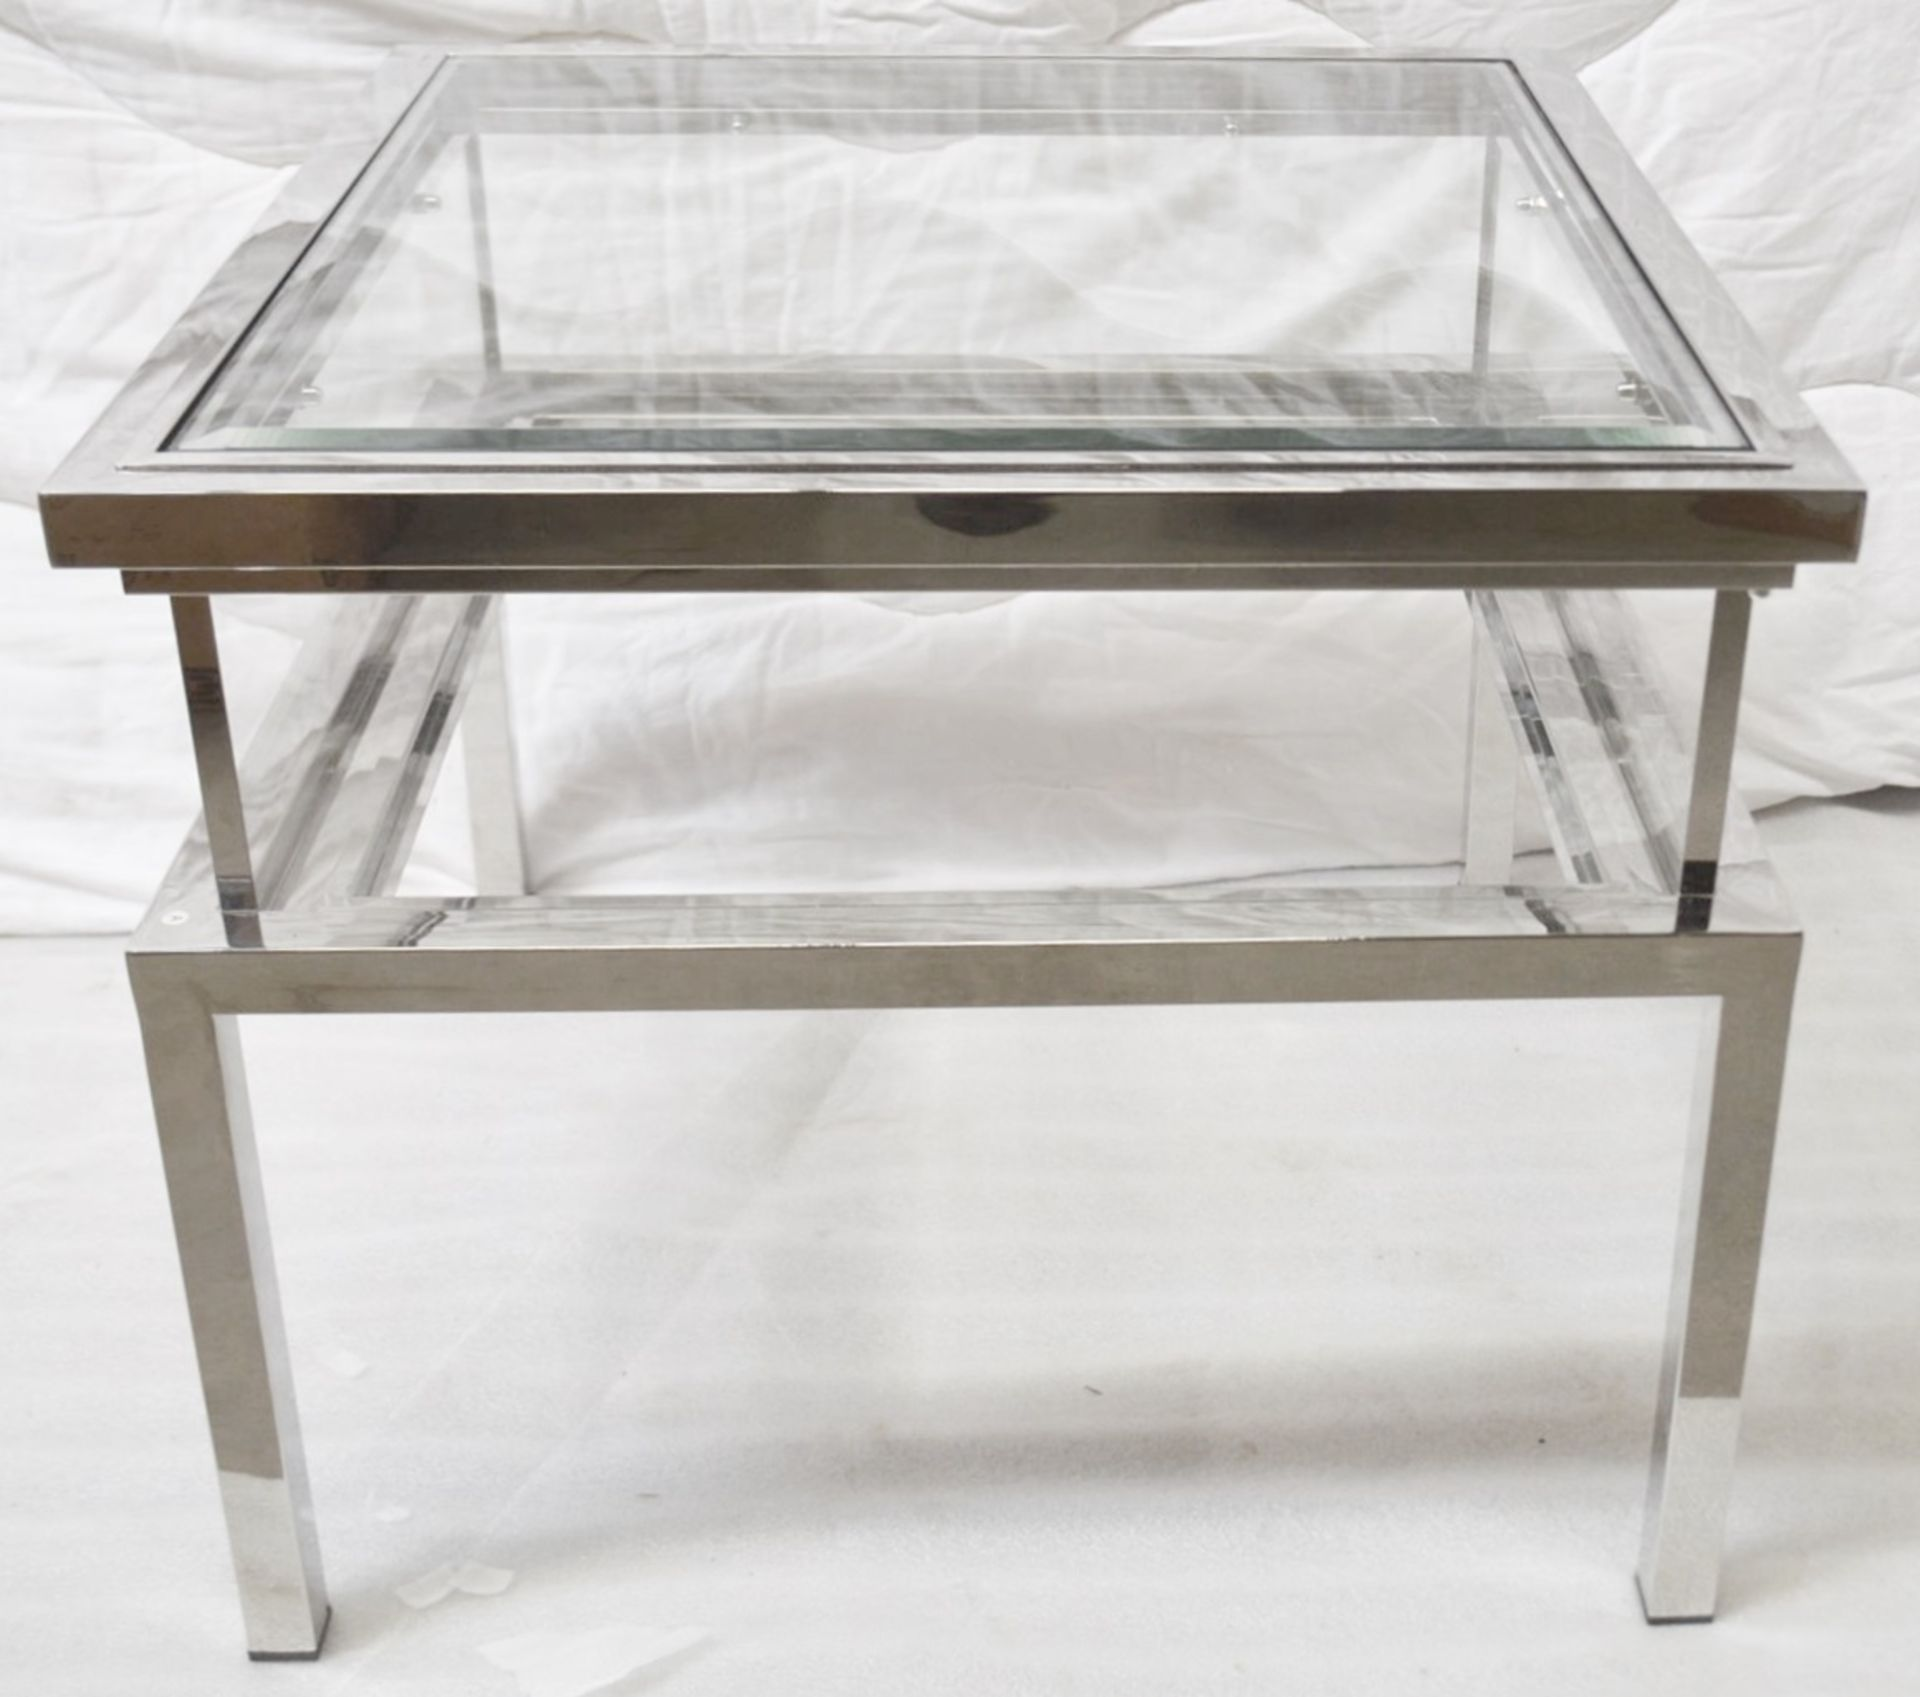 1 x EICHHOLTZ Glass Topped Side Table Harvey With A Polished Steel Frame - Original RRP £1,690 - Image 2 of 3